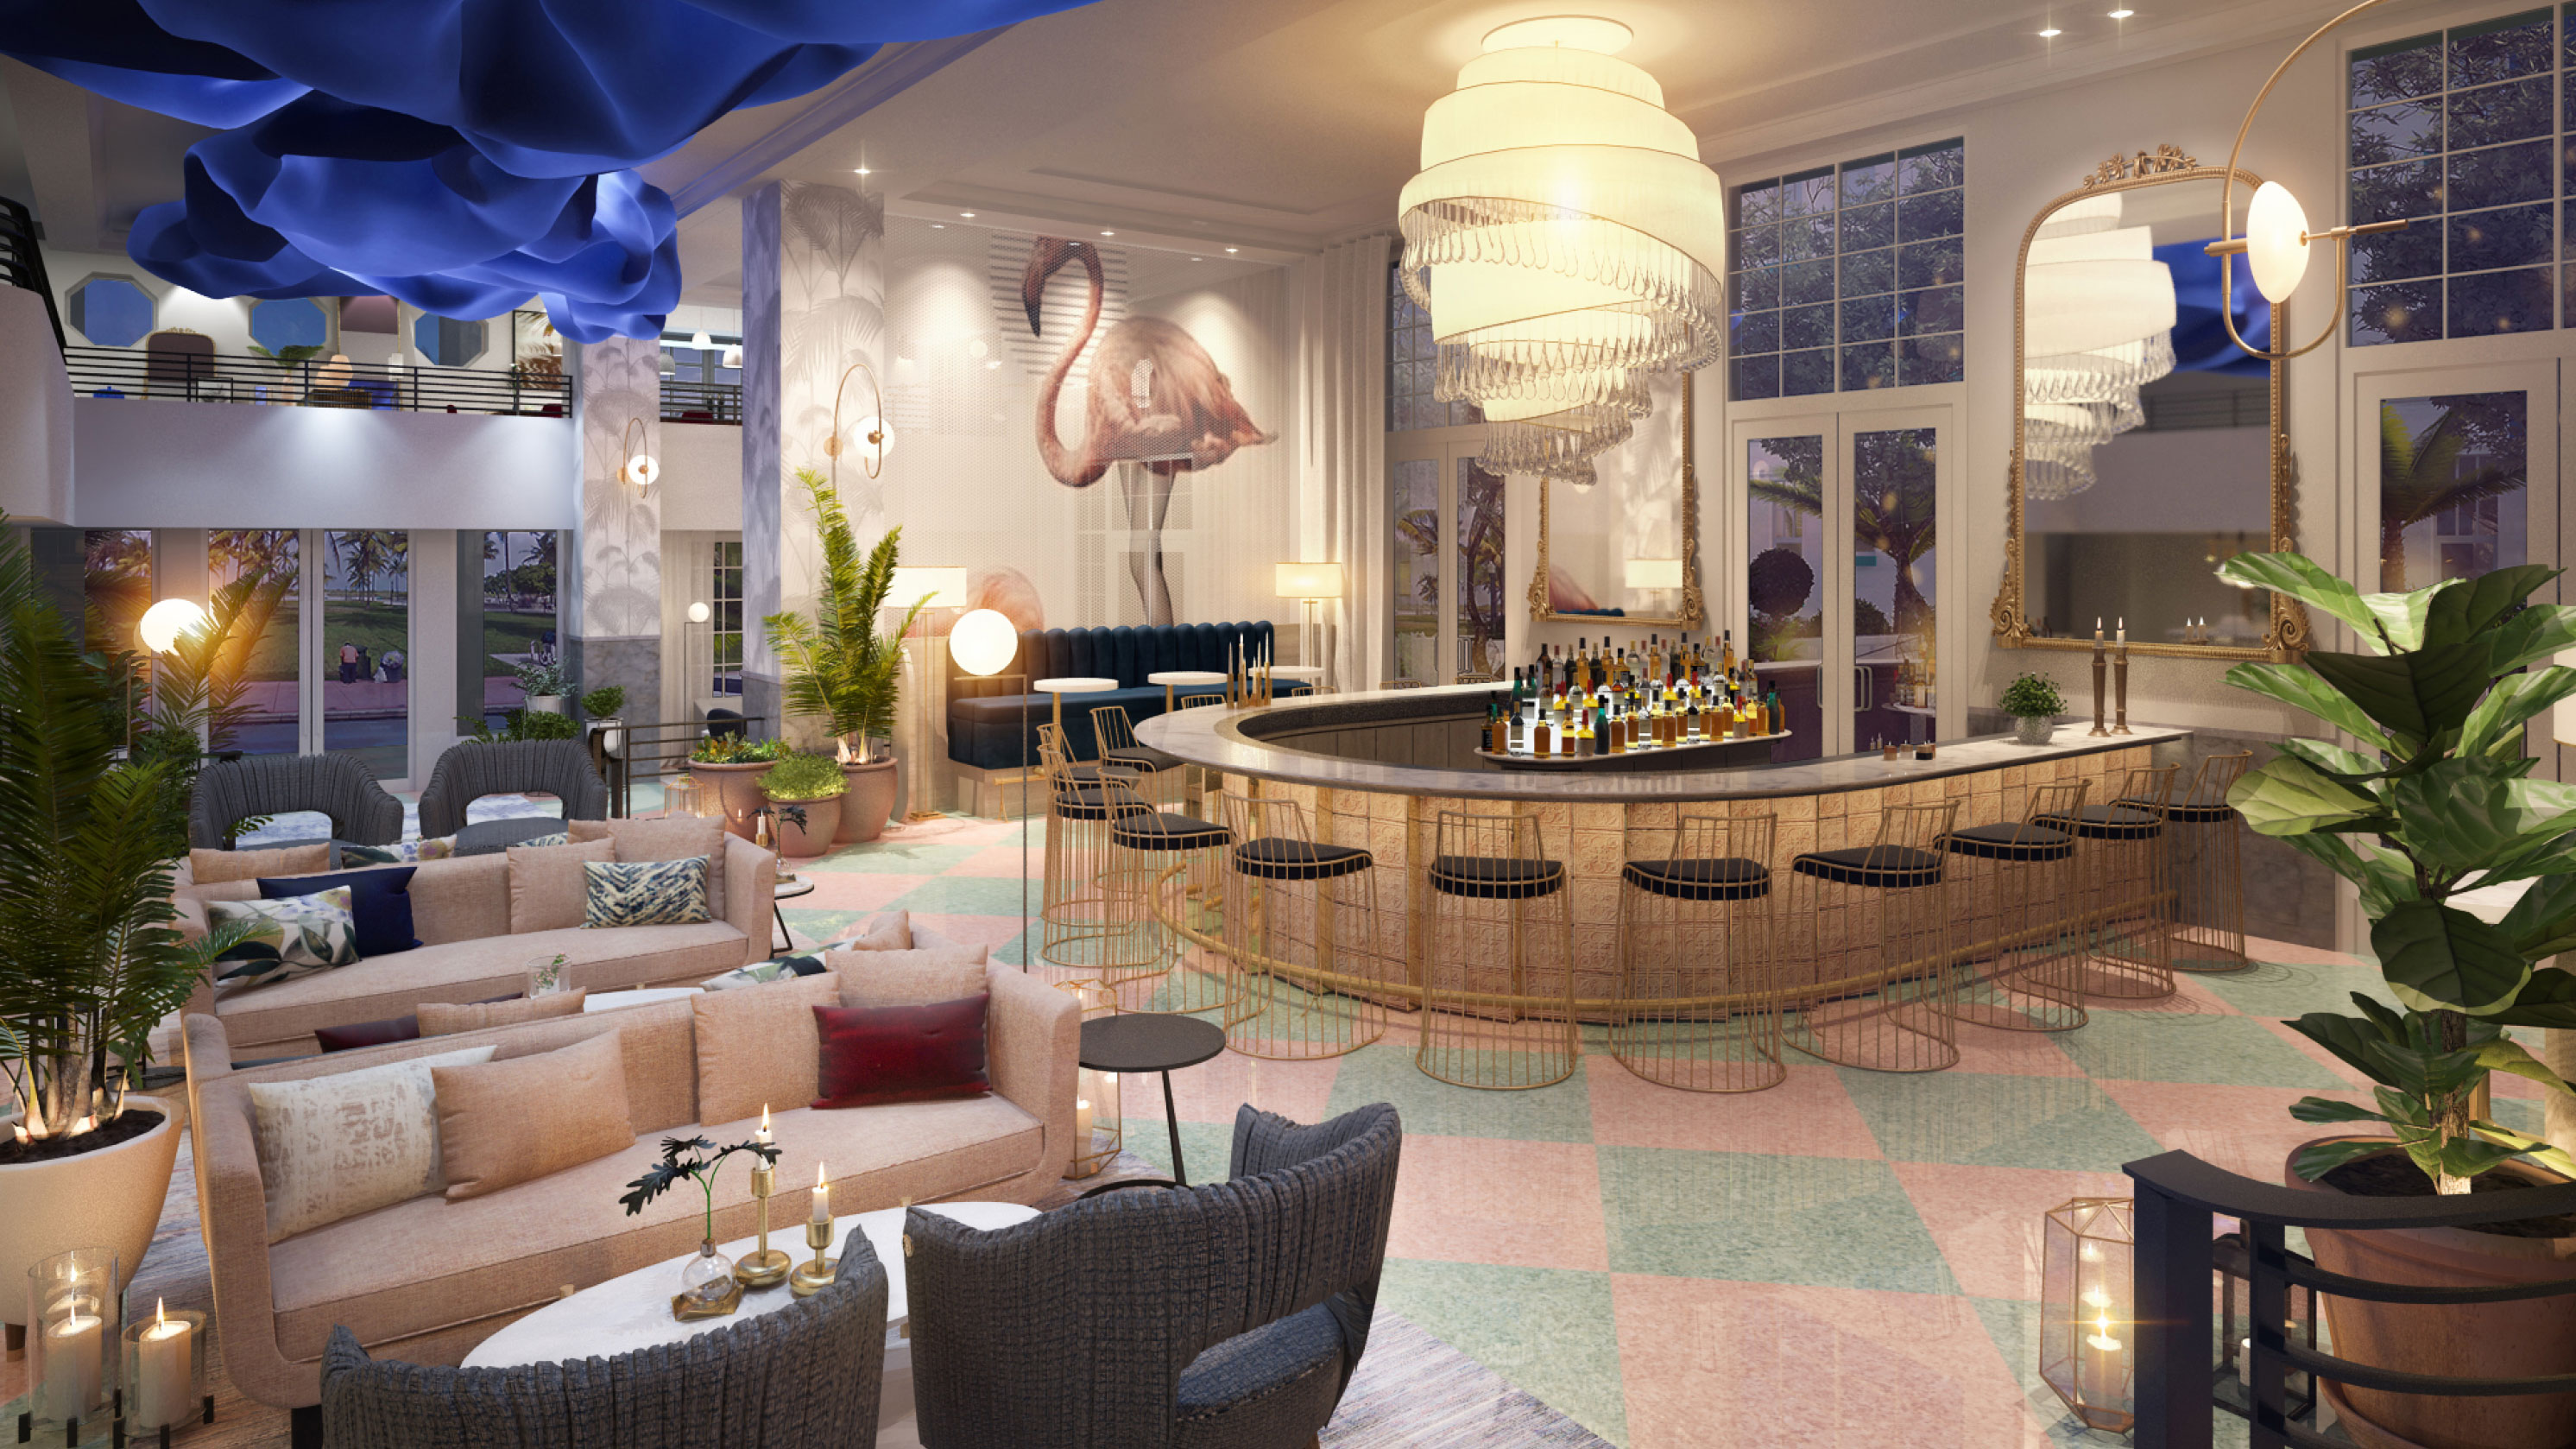 The bar at the Celino South Beach with chandelier and tropical decor